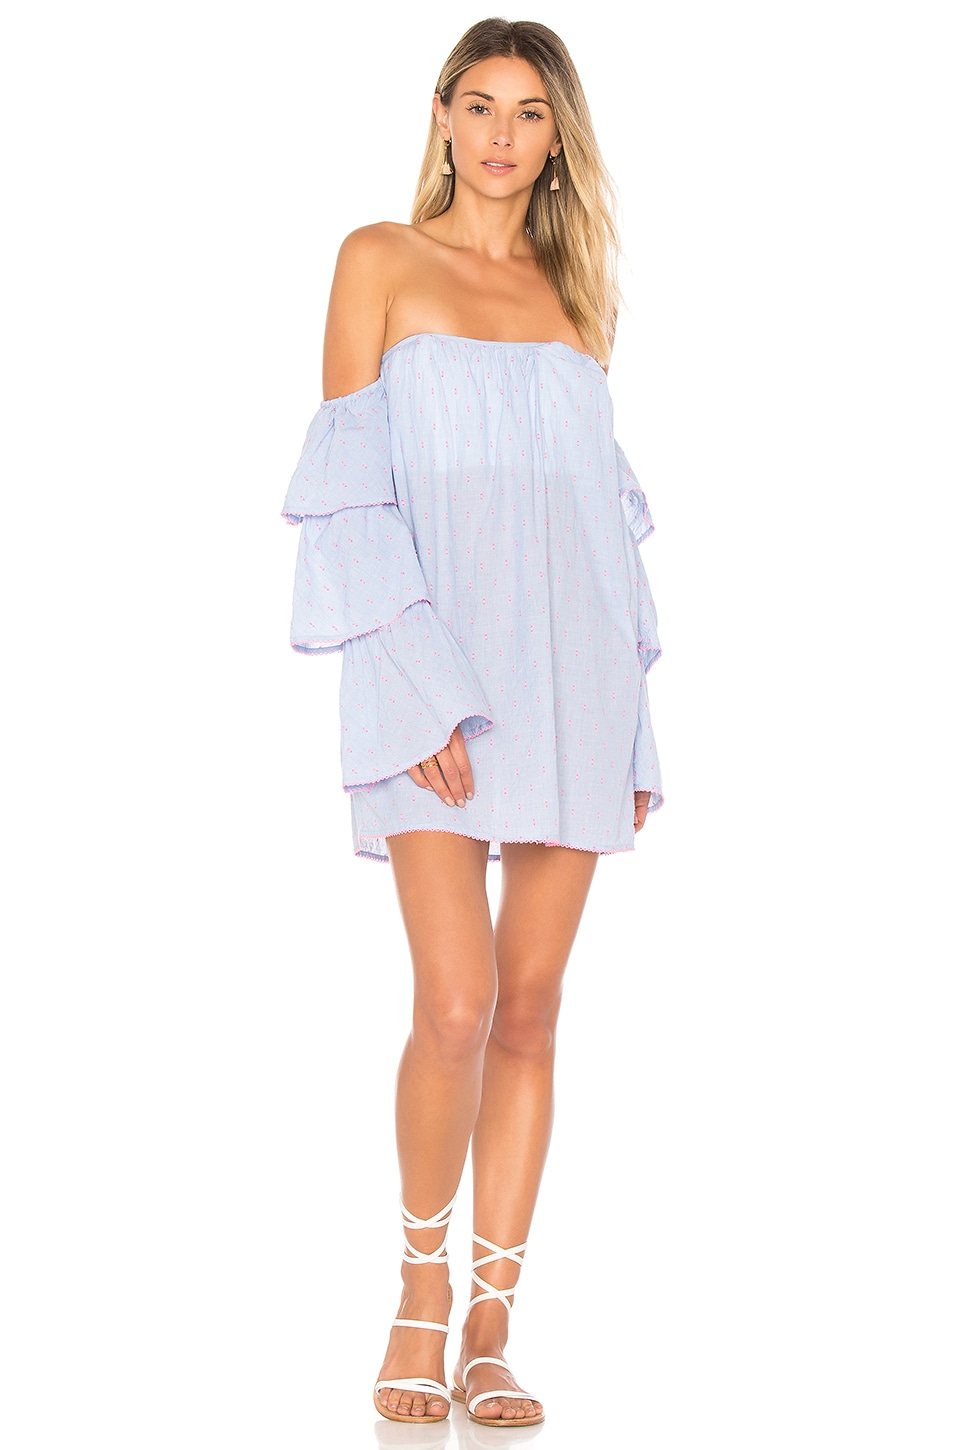 Lovers + Friends Ronita Dress in Blue Pink Dot